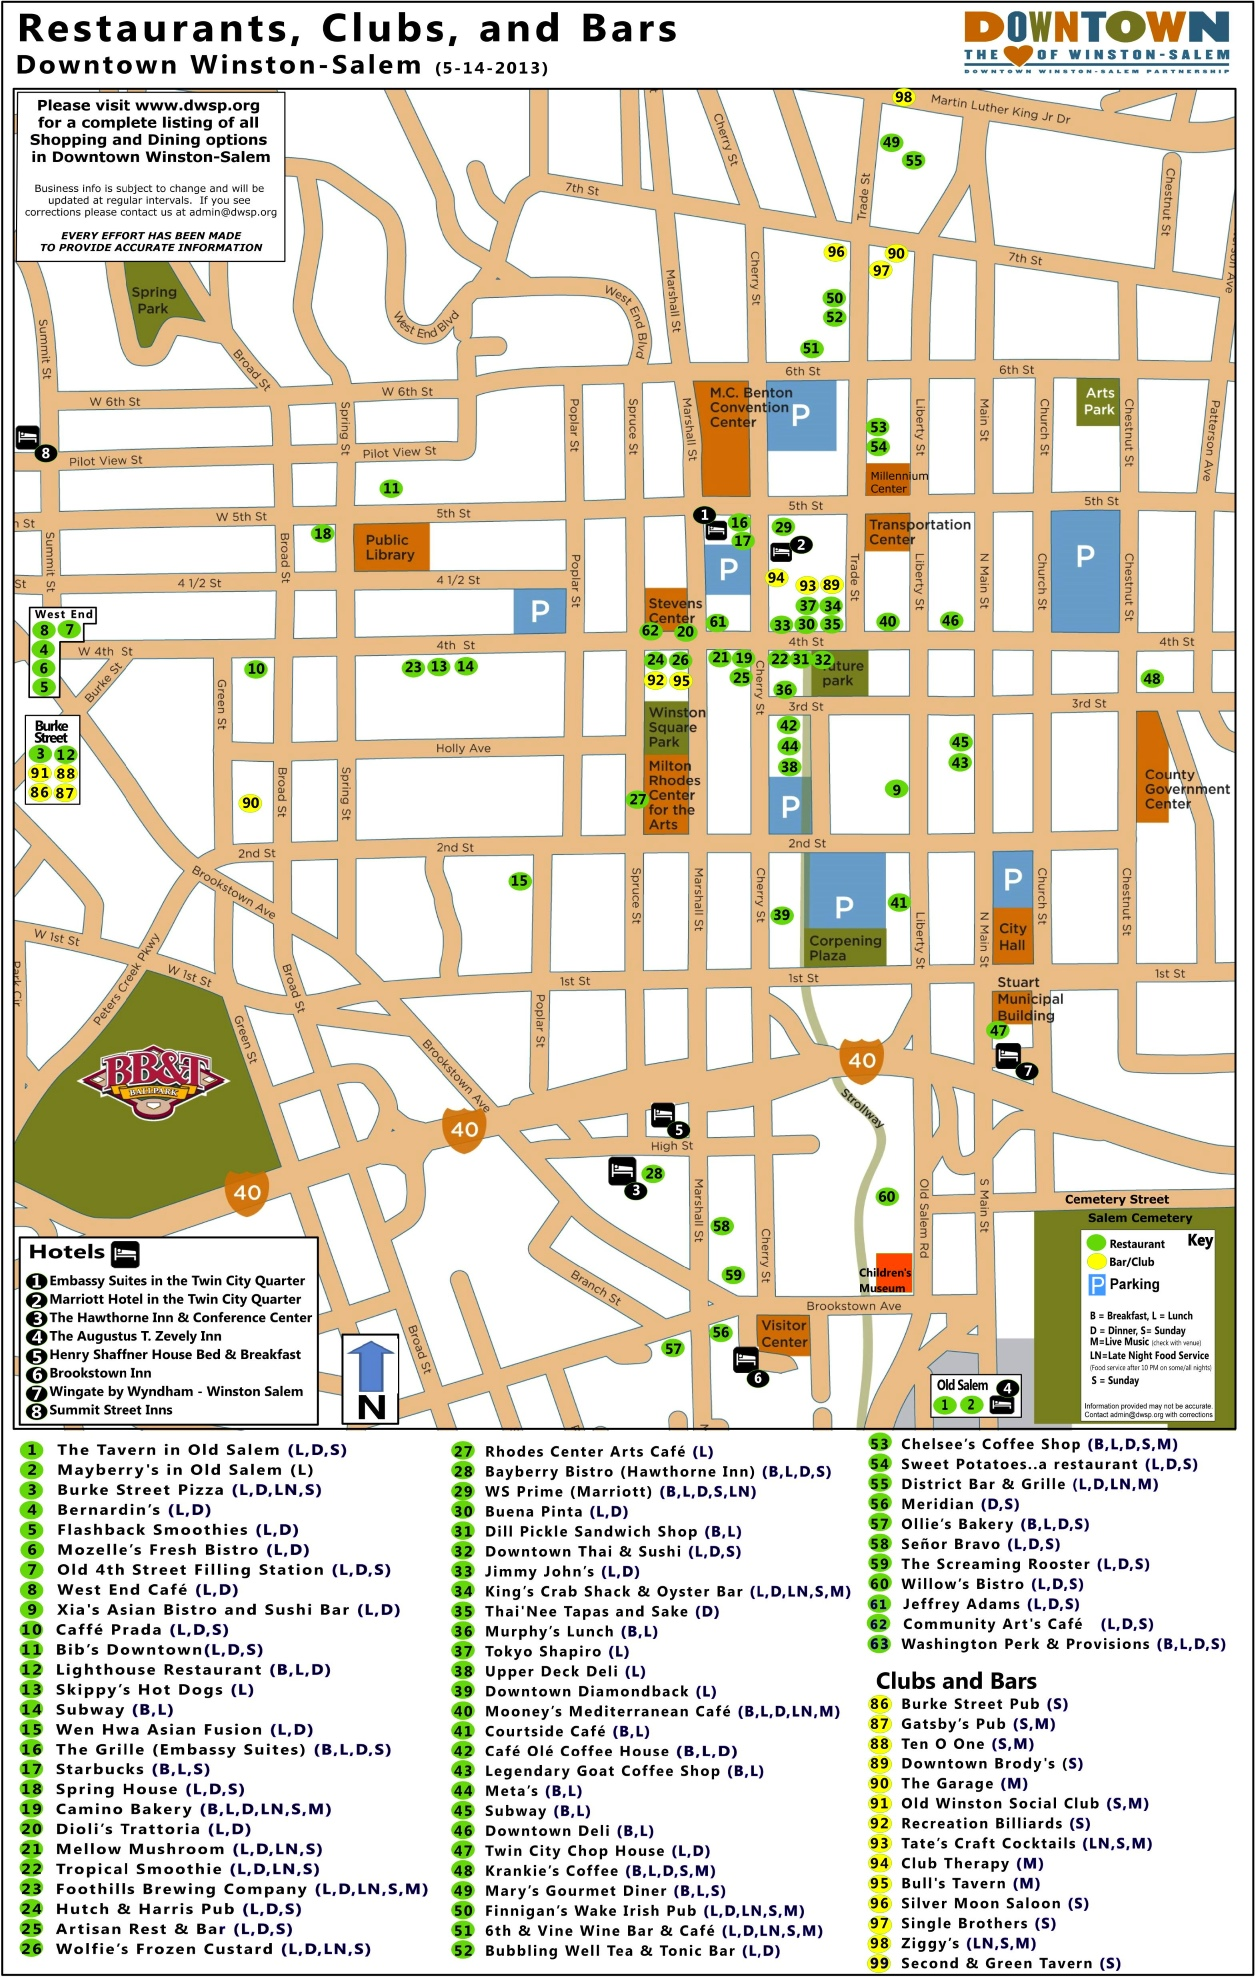 WinstonSalem downtown restaurant map